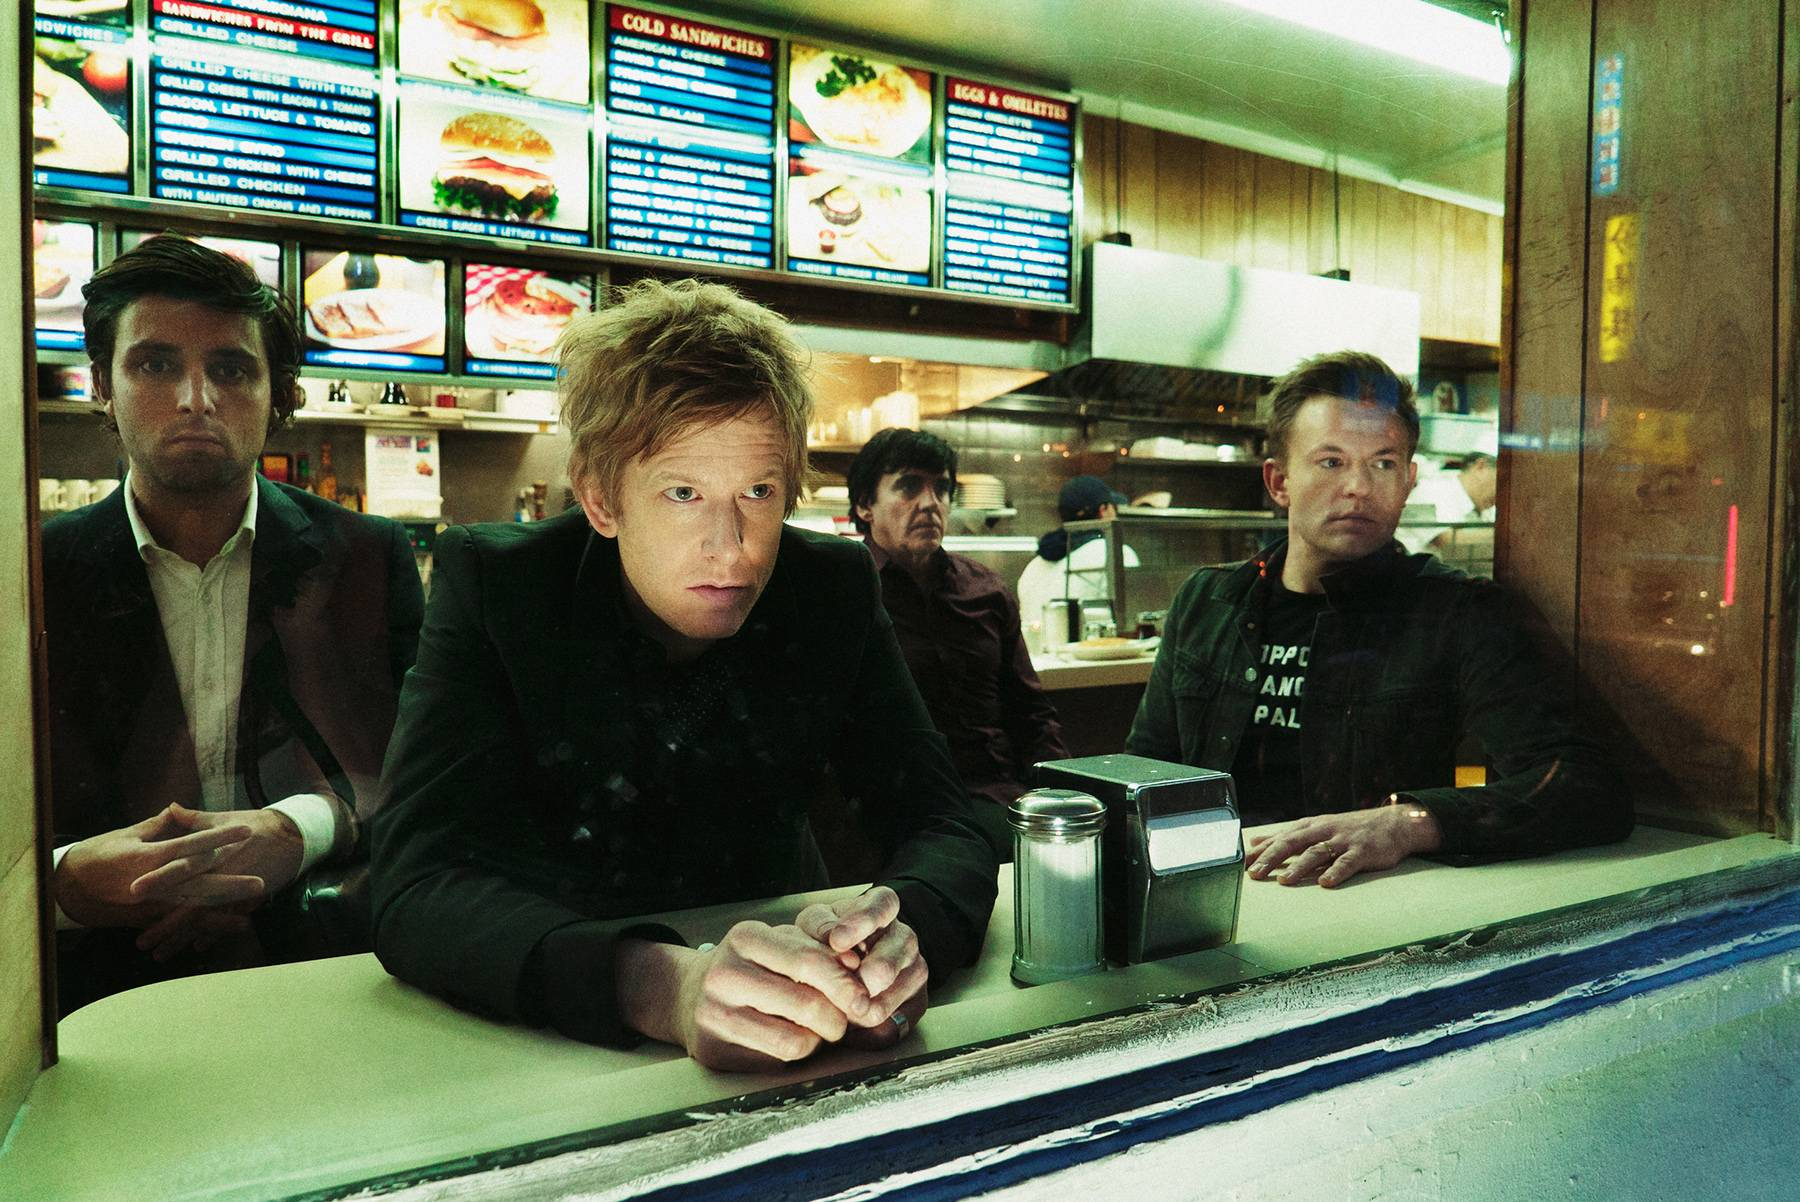 Indie rock band Spoon headlines 93XRT's Goose Island Holiday Jam Sunday, Dec. 10, at the Chicago Theatre.